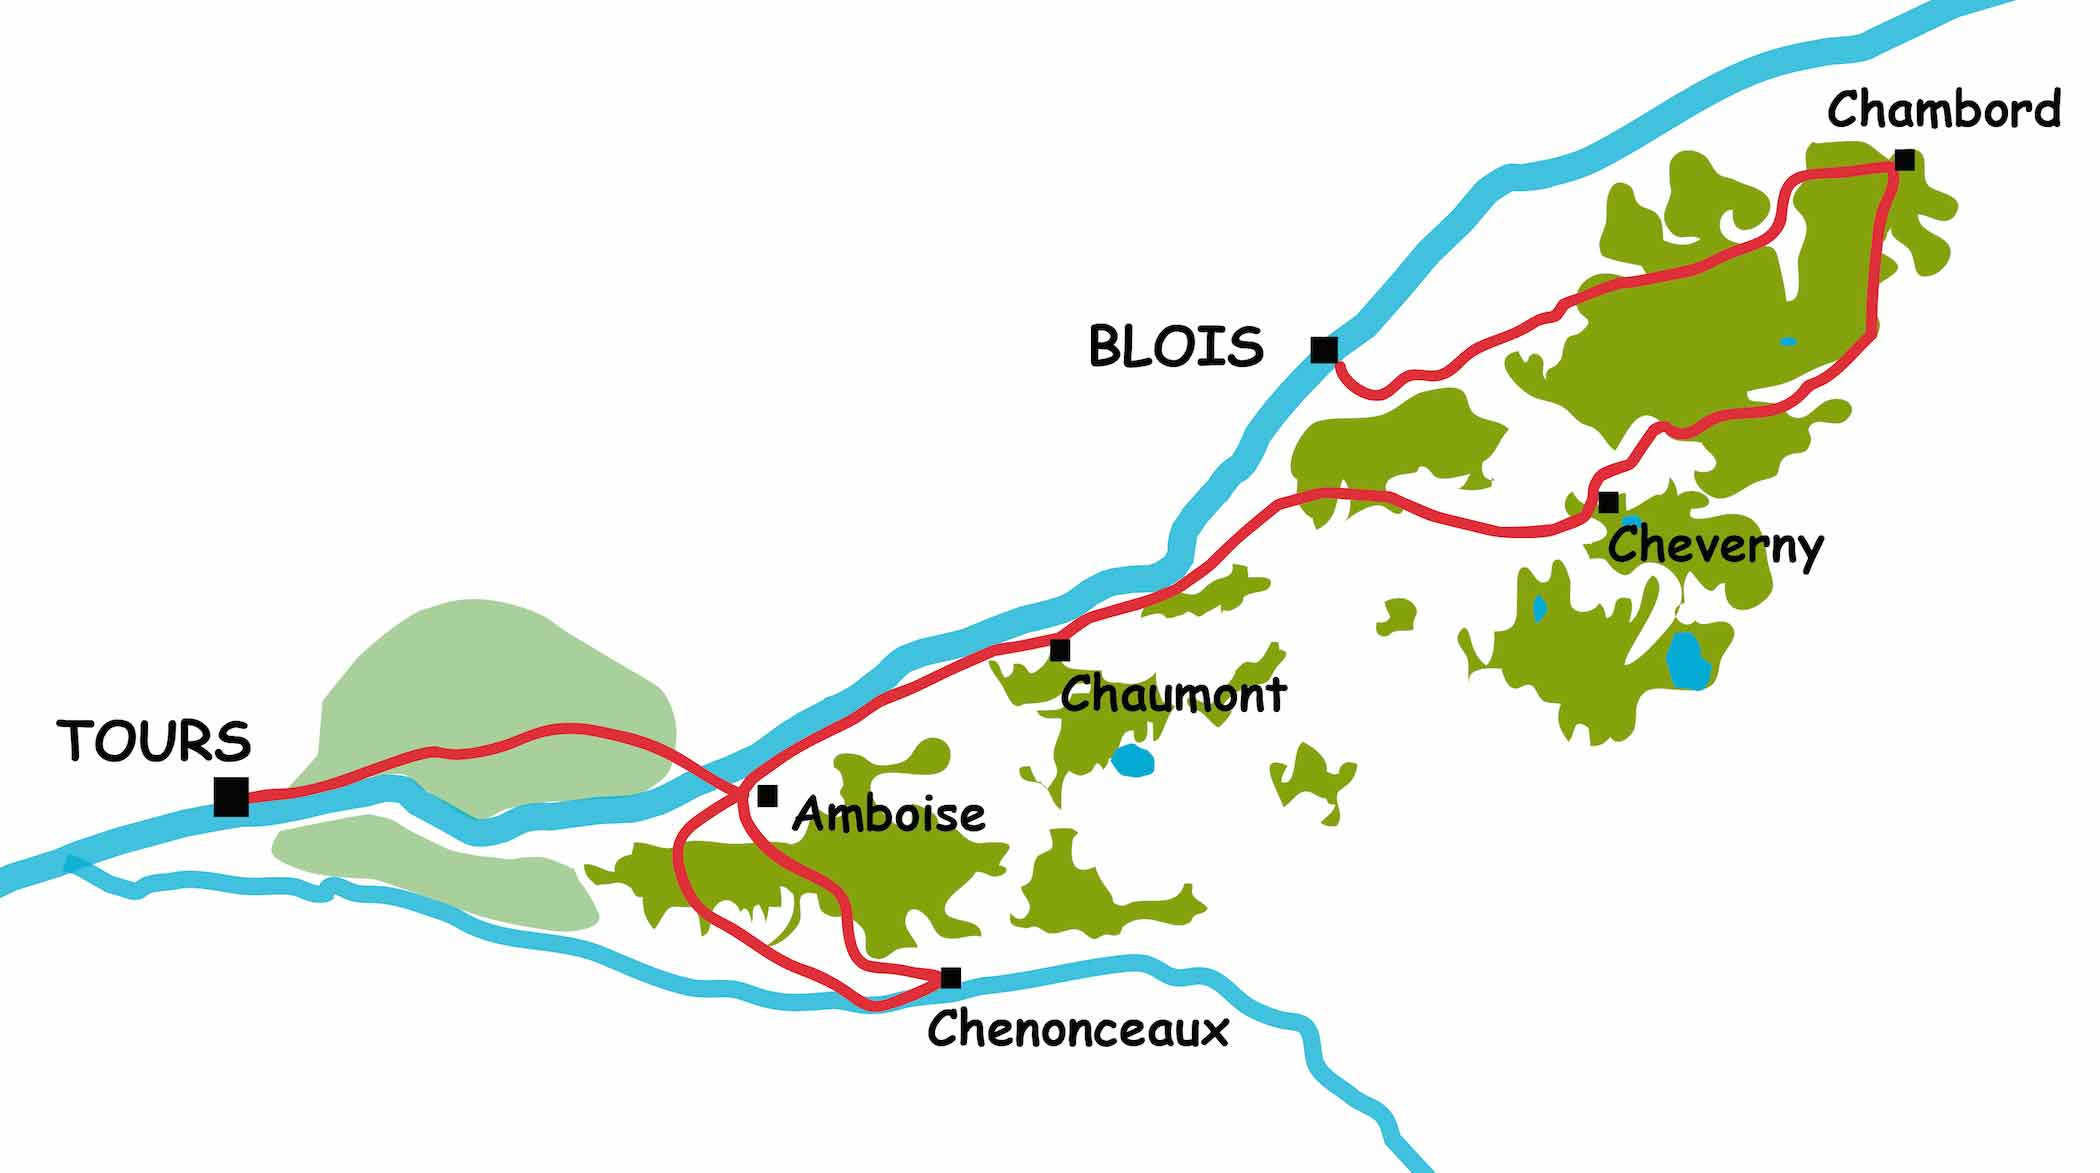 A cycle tour amongst the Loire valley châteaux from Blois to Tours